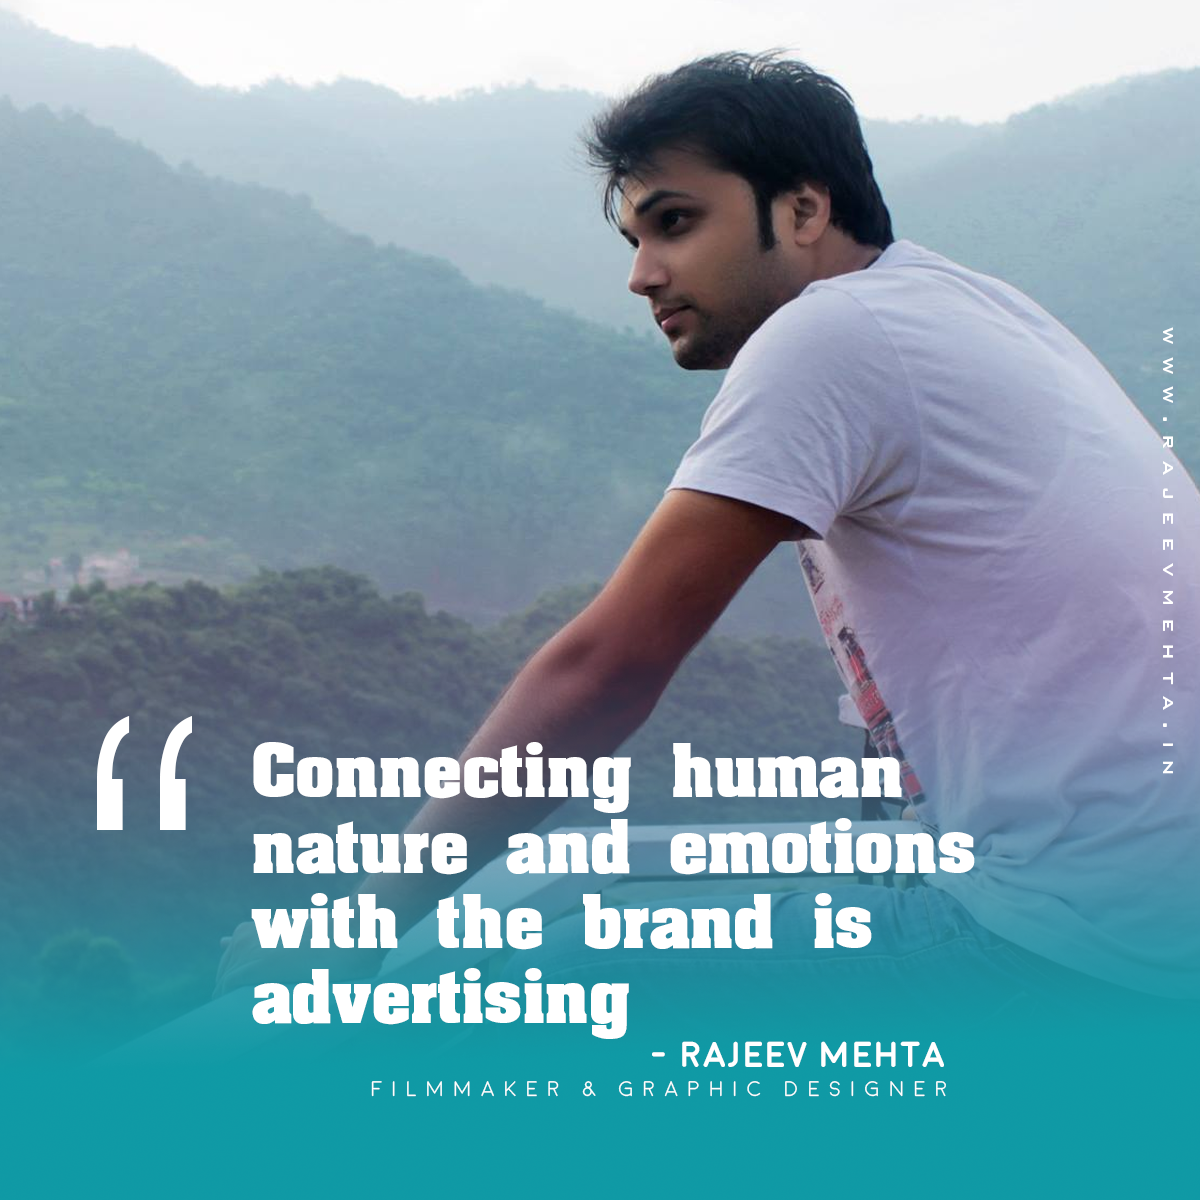 """Connecting human nature and emotions with the brand is advertising "" - Rajeev Mehta (Filmmaker and Graphic Designer)"